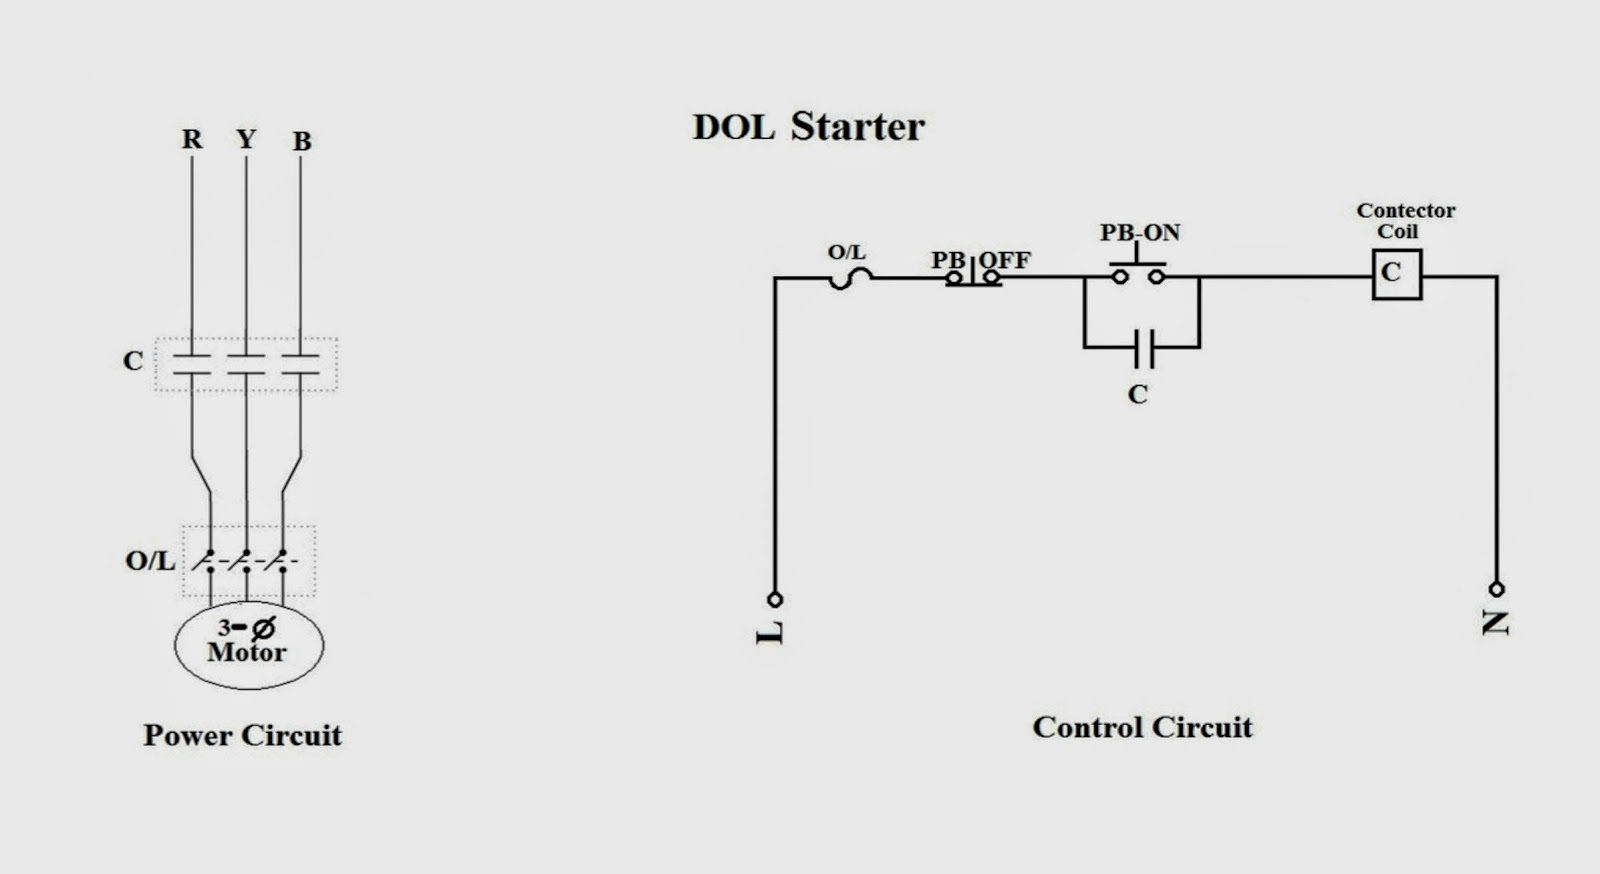 Training Report On Bokaro Steel Plant Common Electrical Doubts Push Button Motor Control Circuit 2 To Start The Is Pressed This Energises Contactors Coil And No Contact Get Closed Completes Power